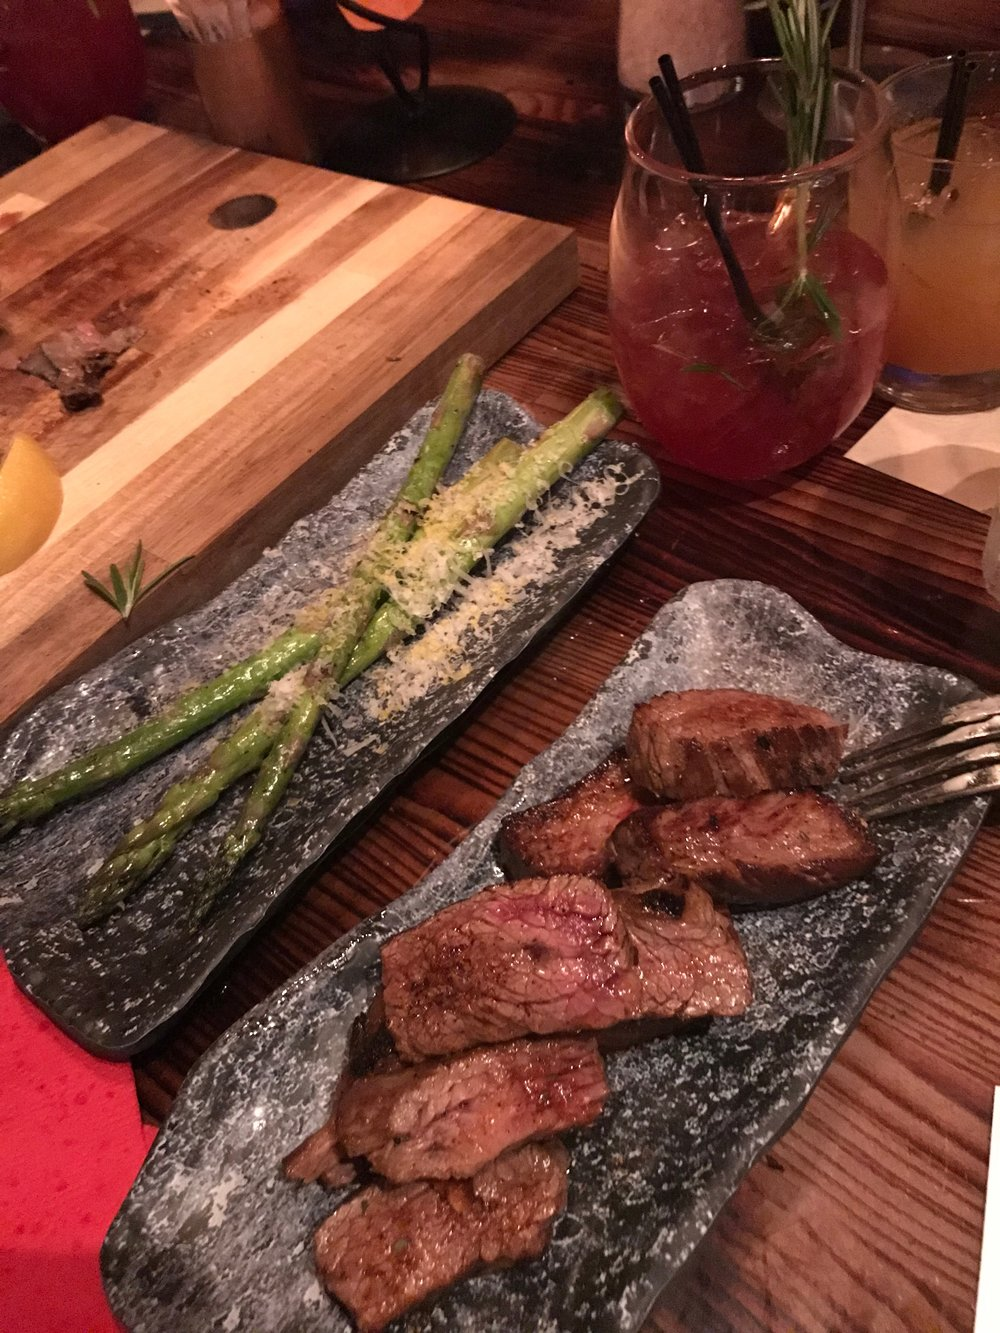 Asparagus & Steak